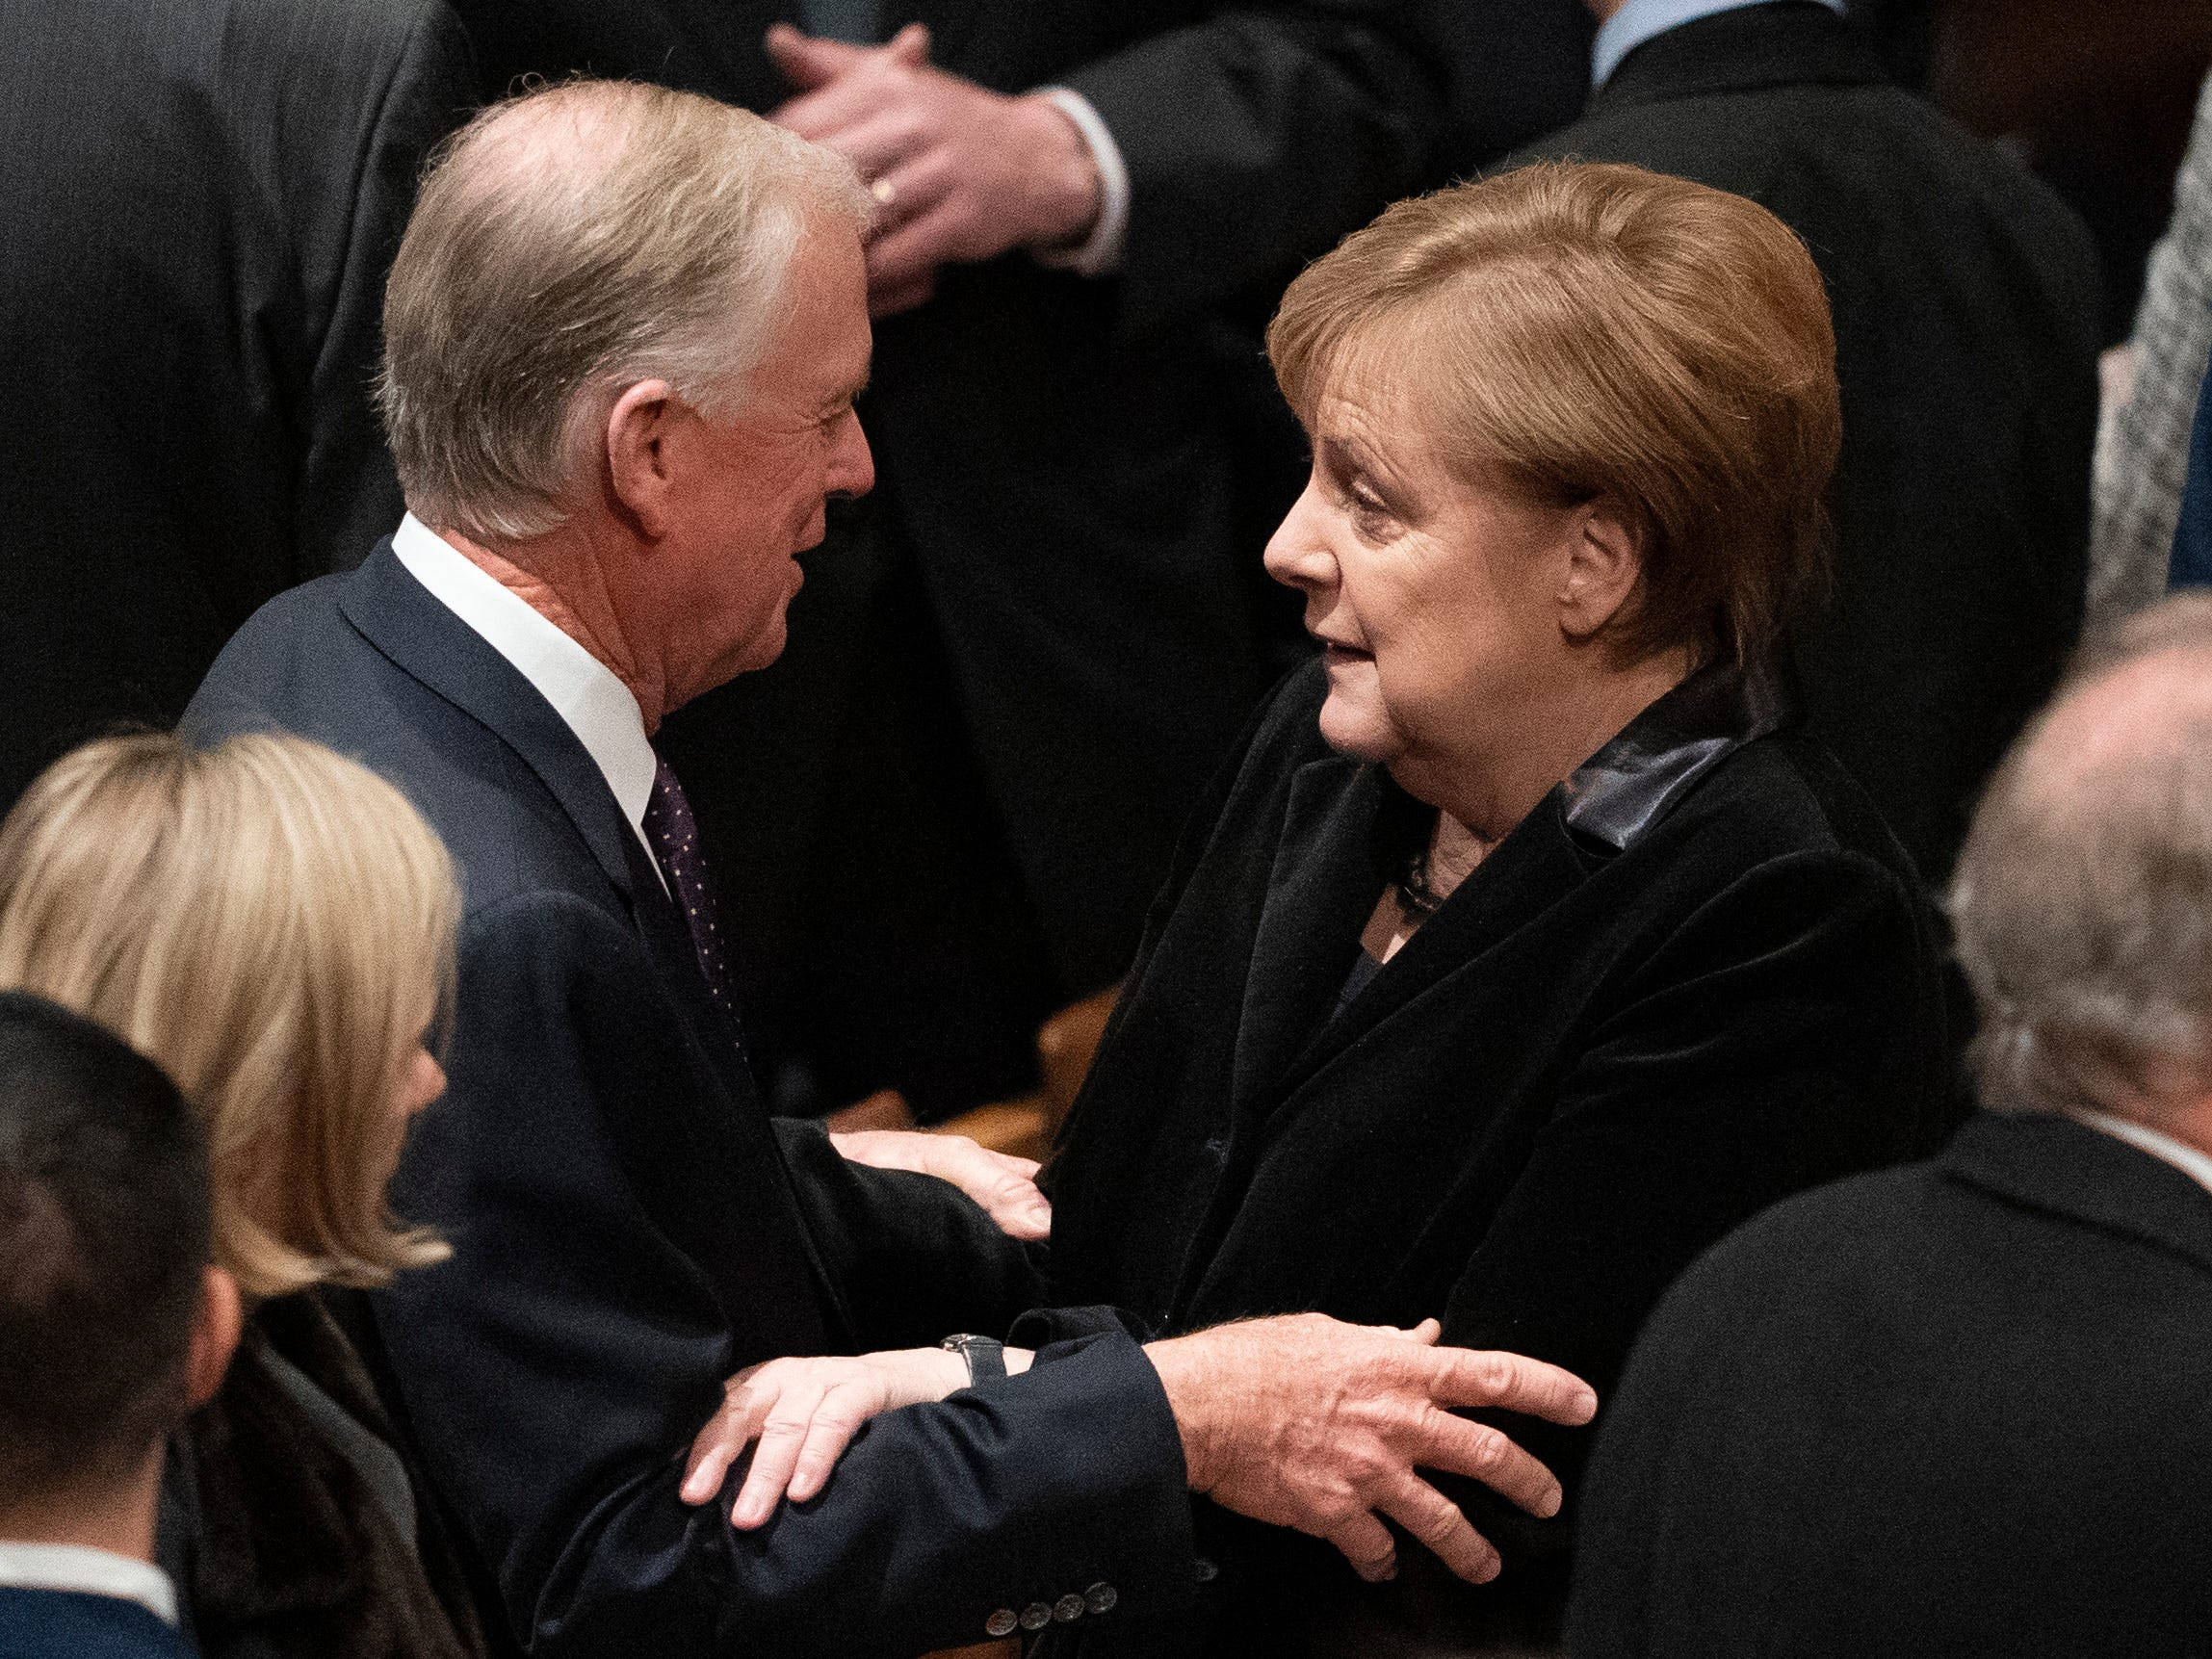 Former Vice President Dan Quayle greets German Chancellor Angela Merkel before the start of the funderal for former President George H.W. Bush at the National Cathedral.